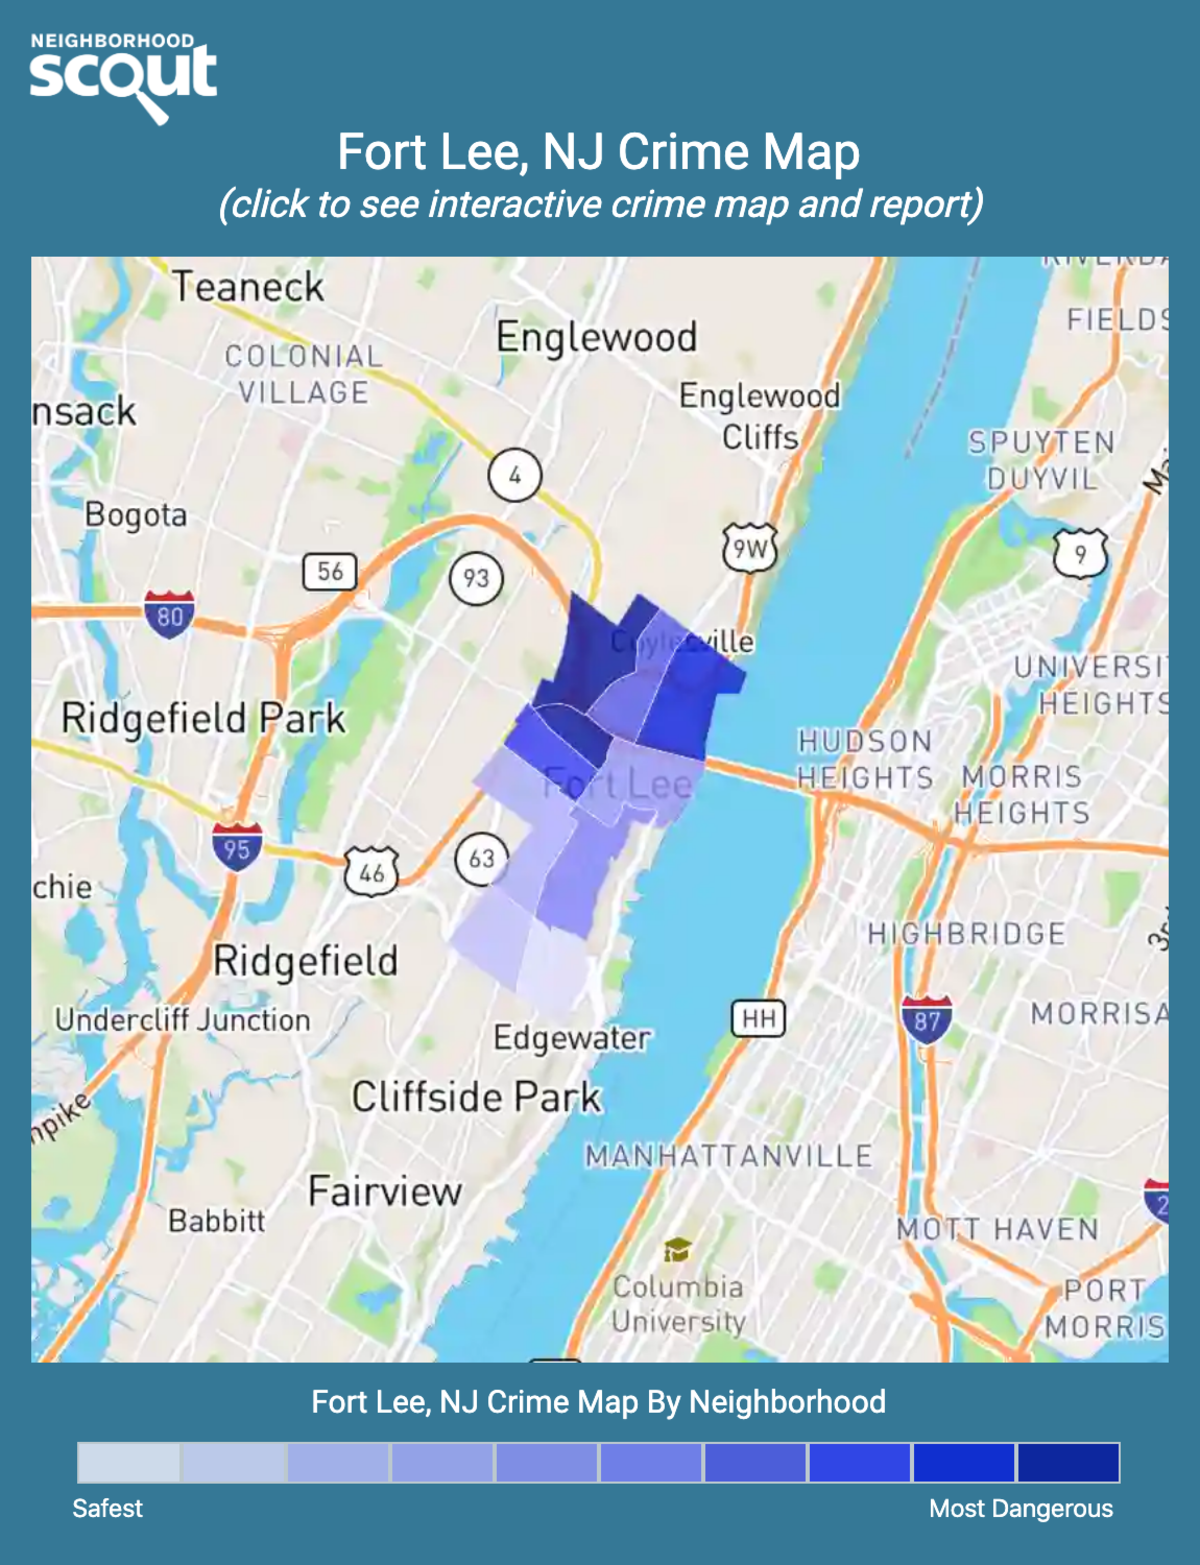 Fort Lee, New Jersey crime map